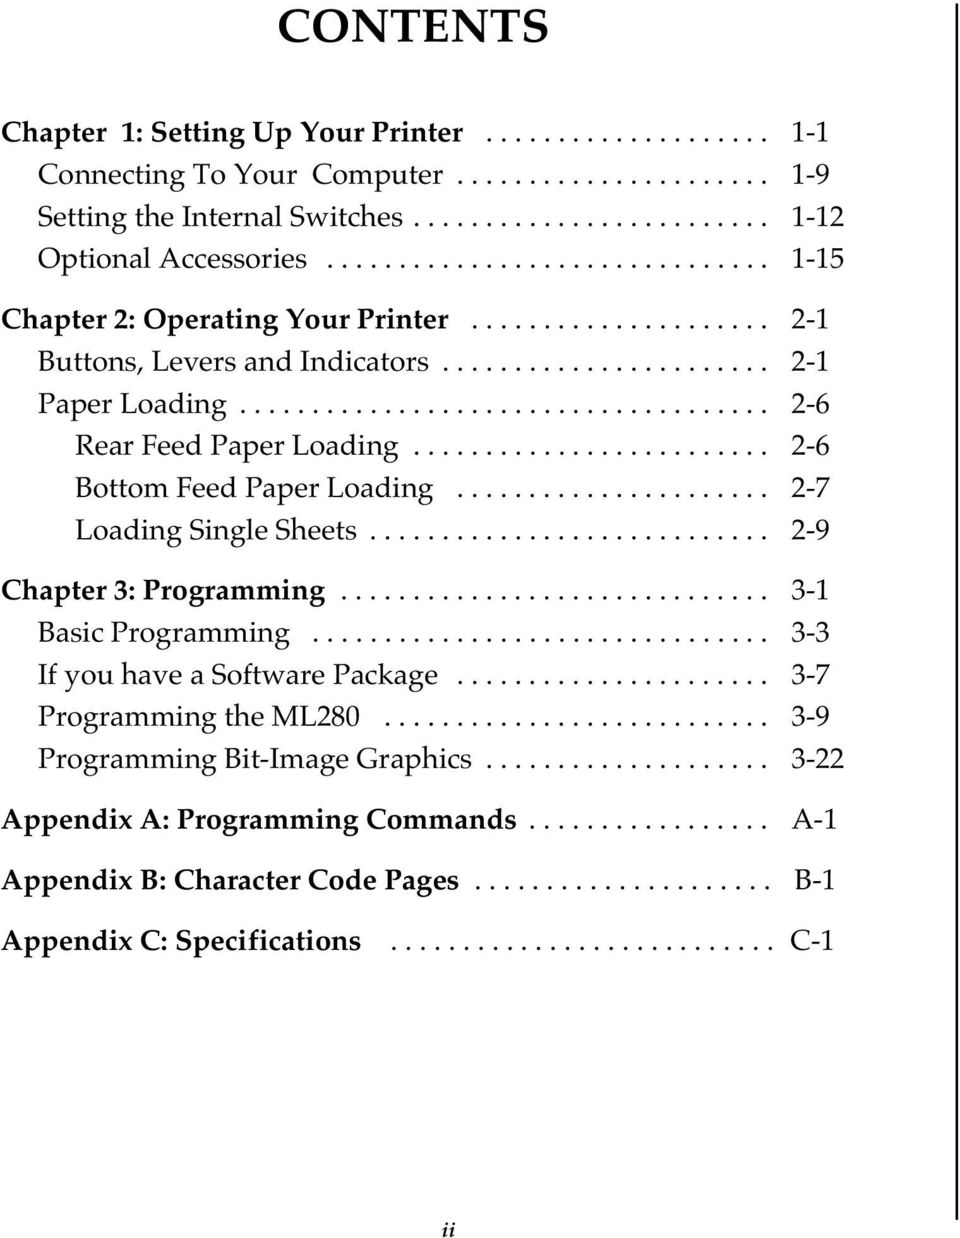 ........................ 2-6 Bottom Feed Paper Loading...................... 2-7 Loading Single Sheets............................ 2-9 Chapter 3: Programming.............................. 3-1 Basic Programming.